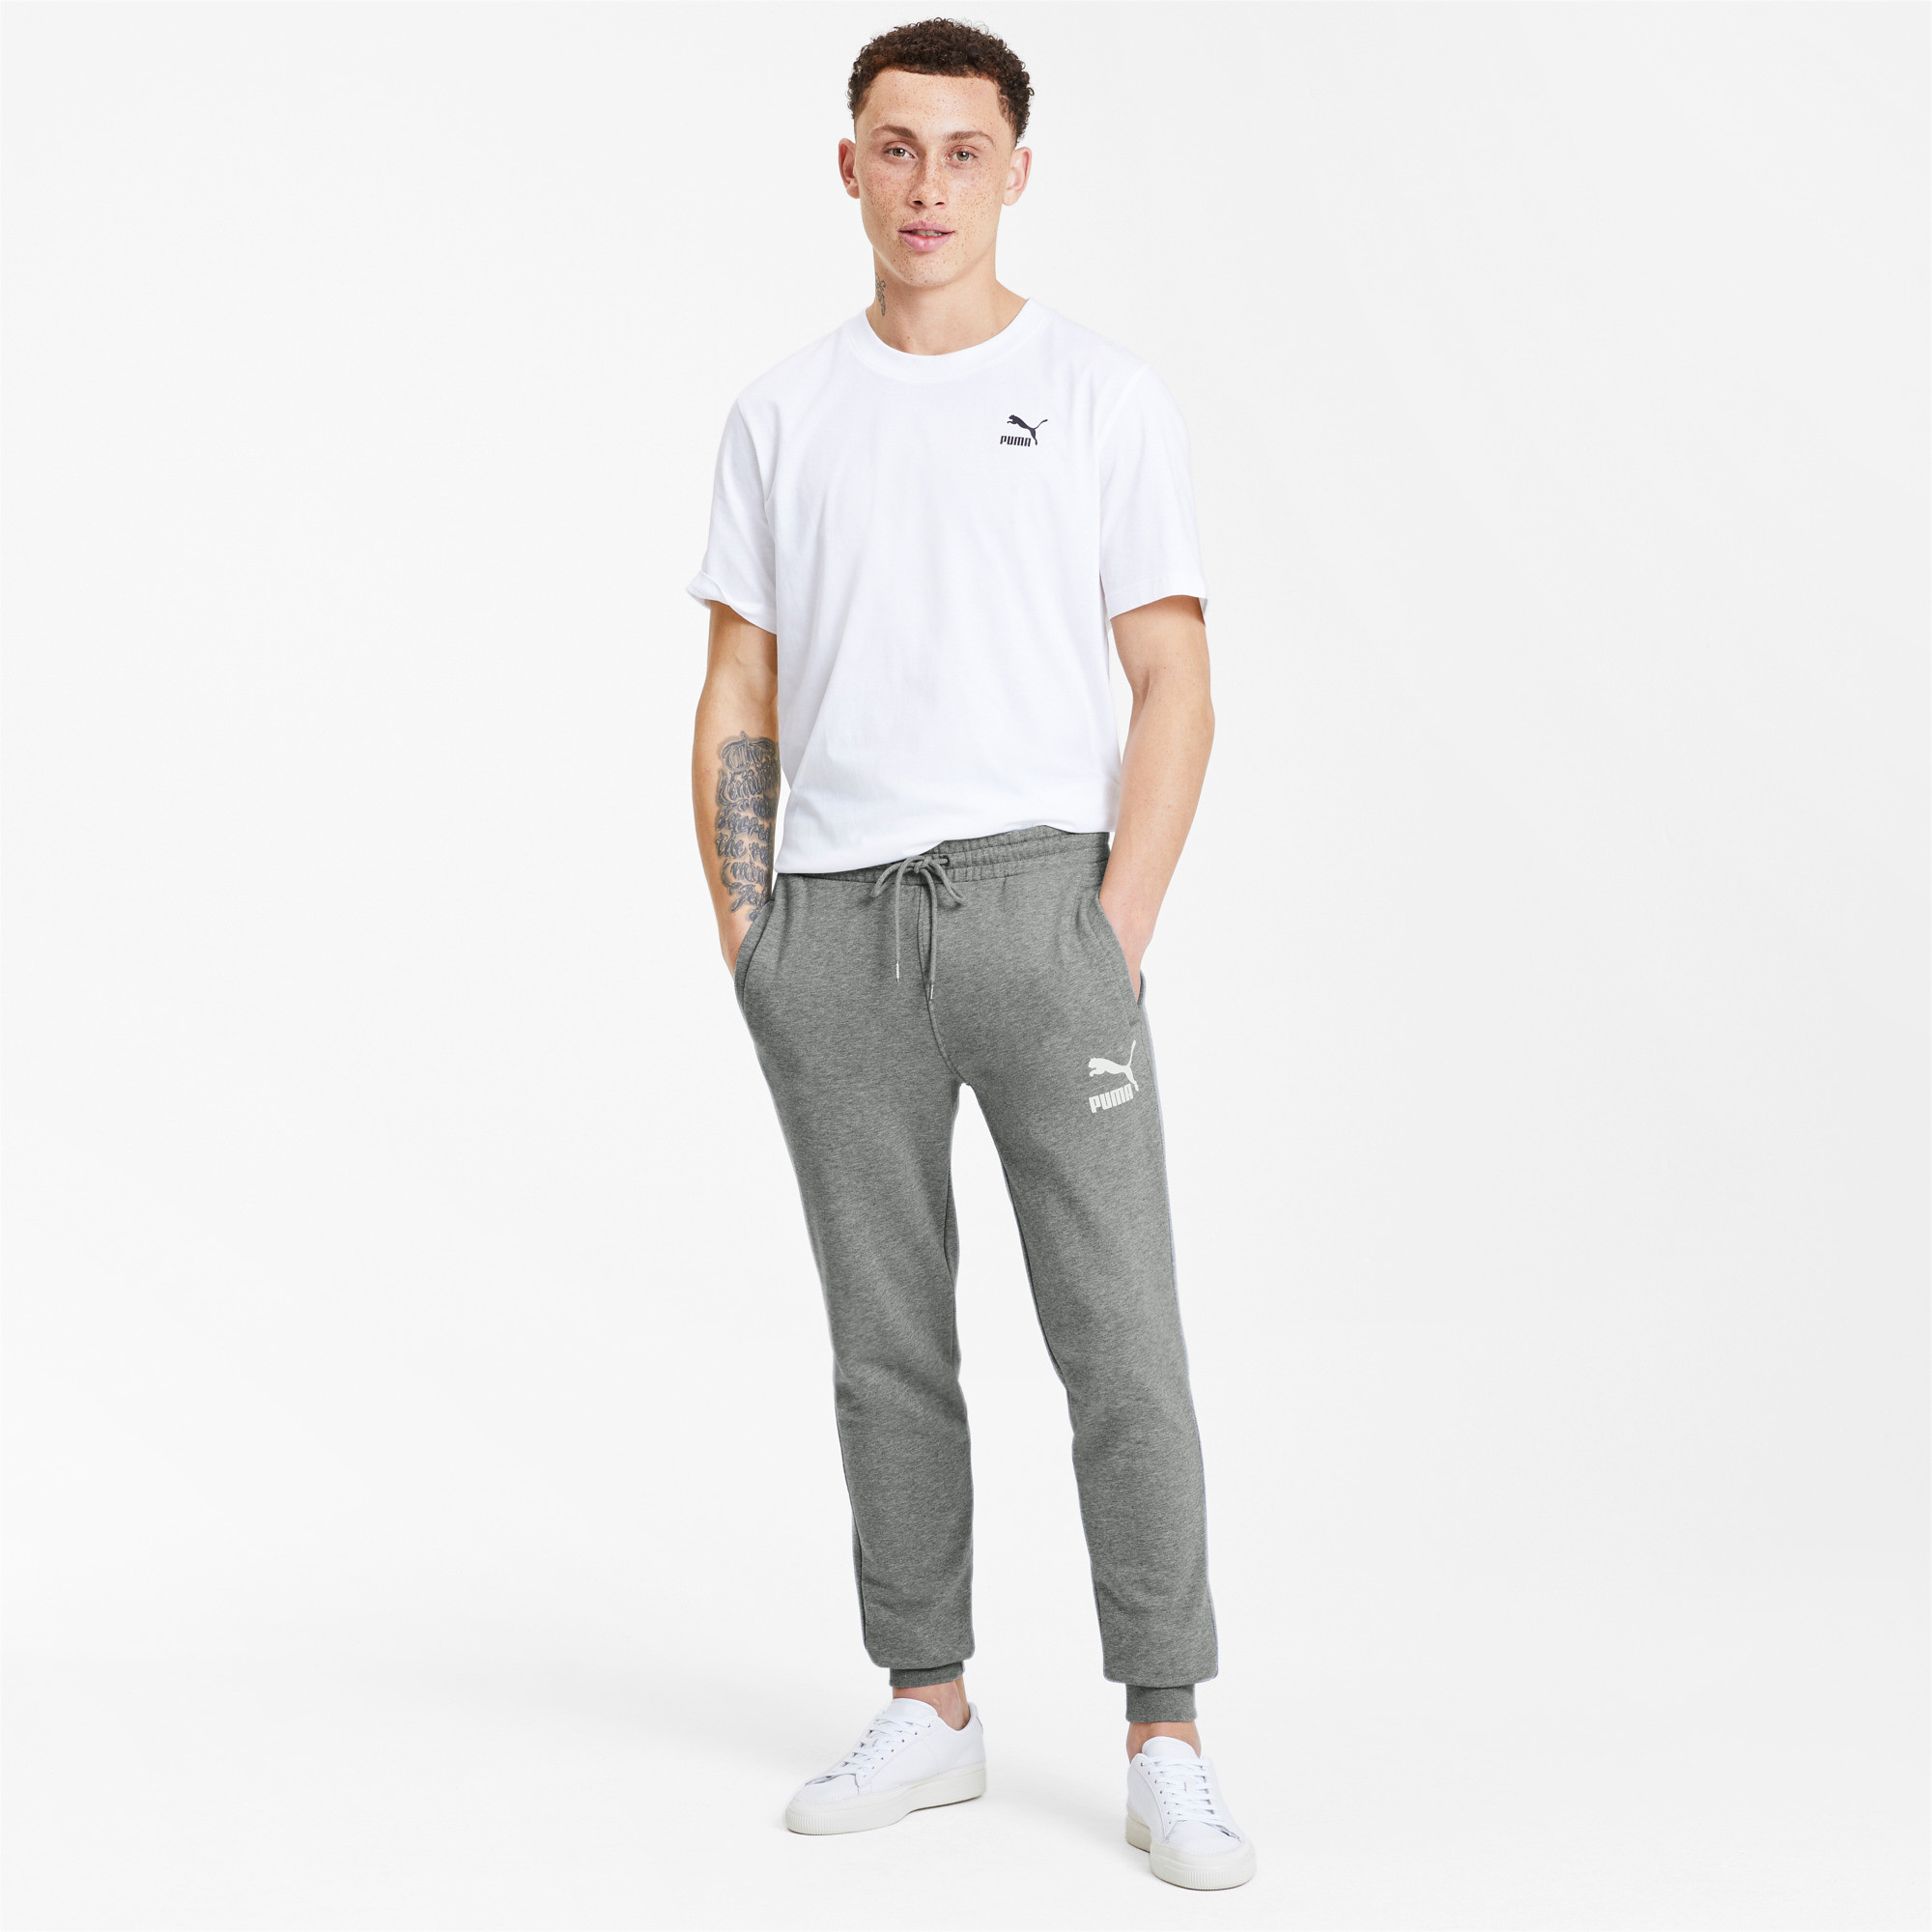 PUMA-Classics-Men-039-s-Cuffed-Sweatpants-Men-Knitted-Pants-Sport-Classics thumbnail 11